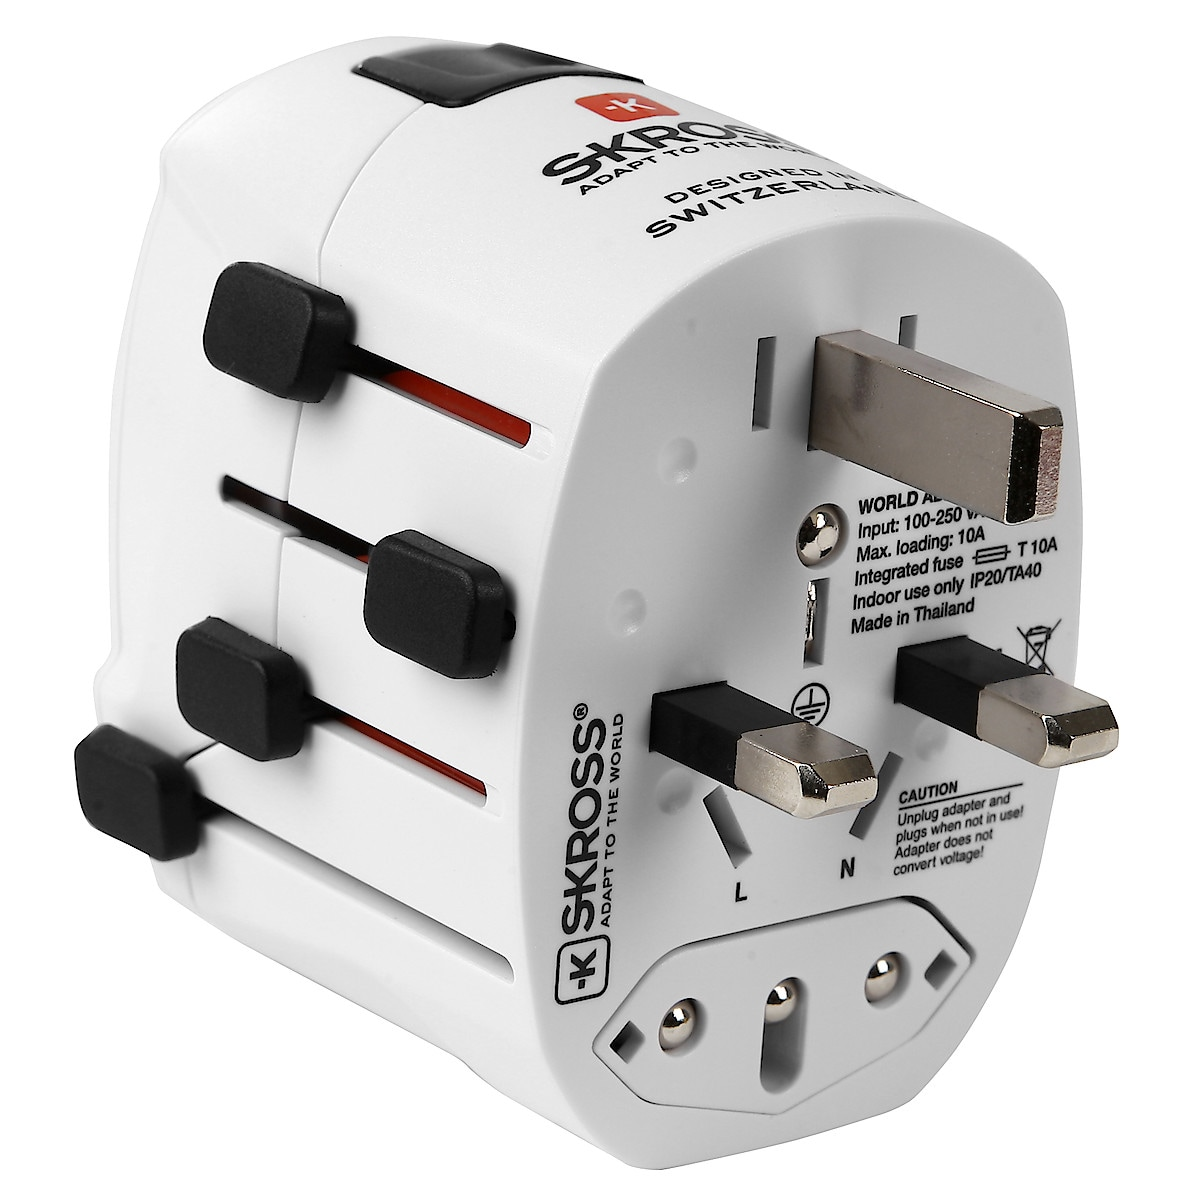 Reseadapter SKROSS World Adapter Pro